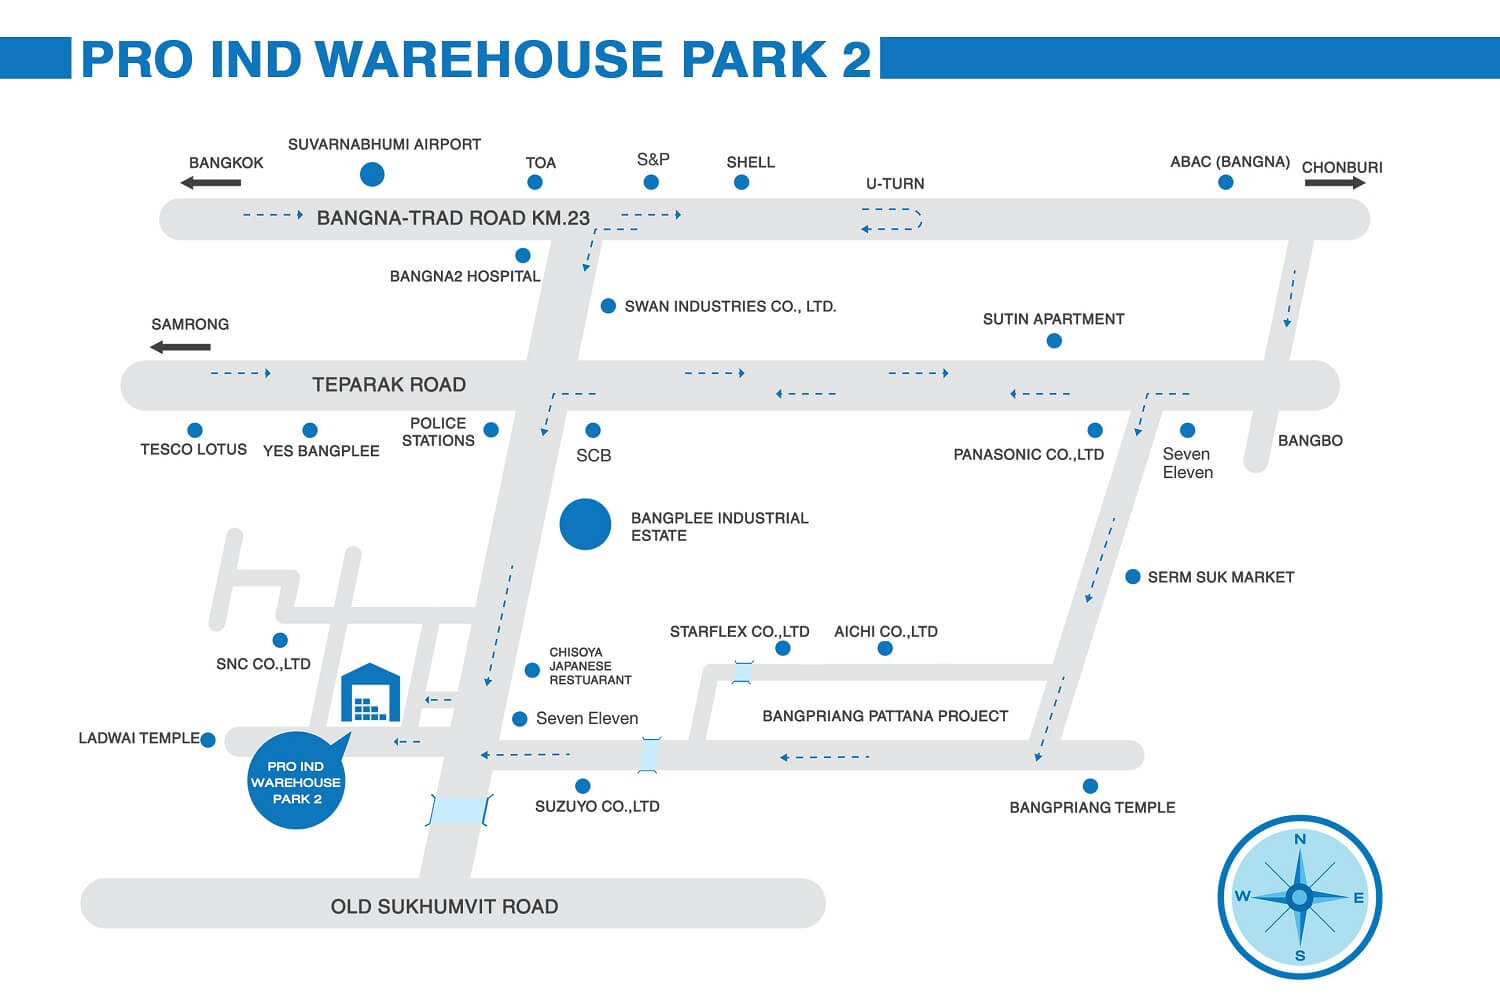 Pro Ind warehouse Park 2 Project Map